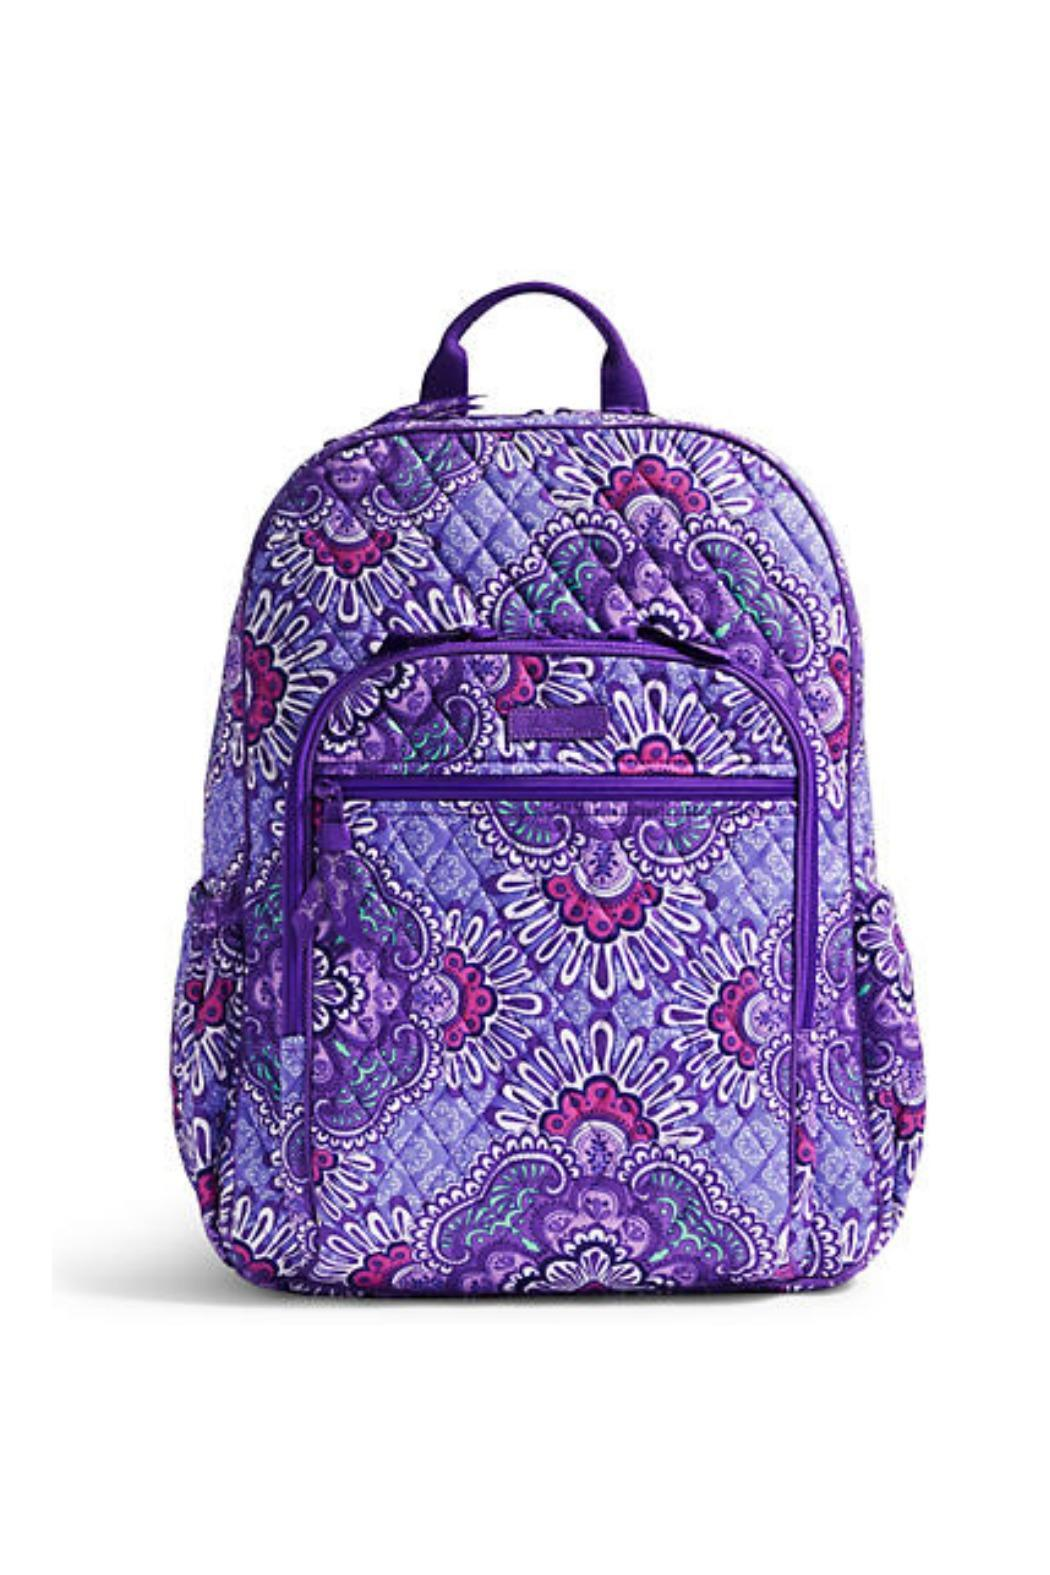 Vera Bradley Backpack From New York By Lets Bag It Shoptiques